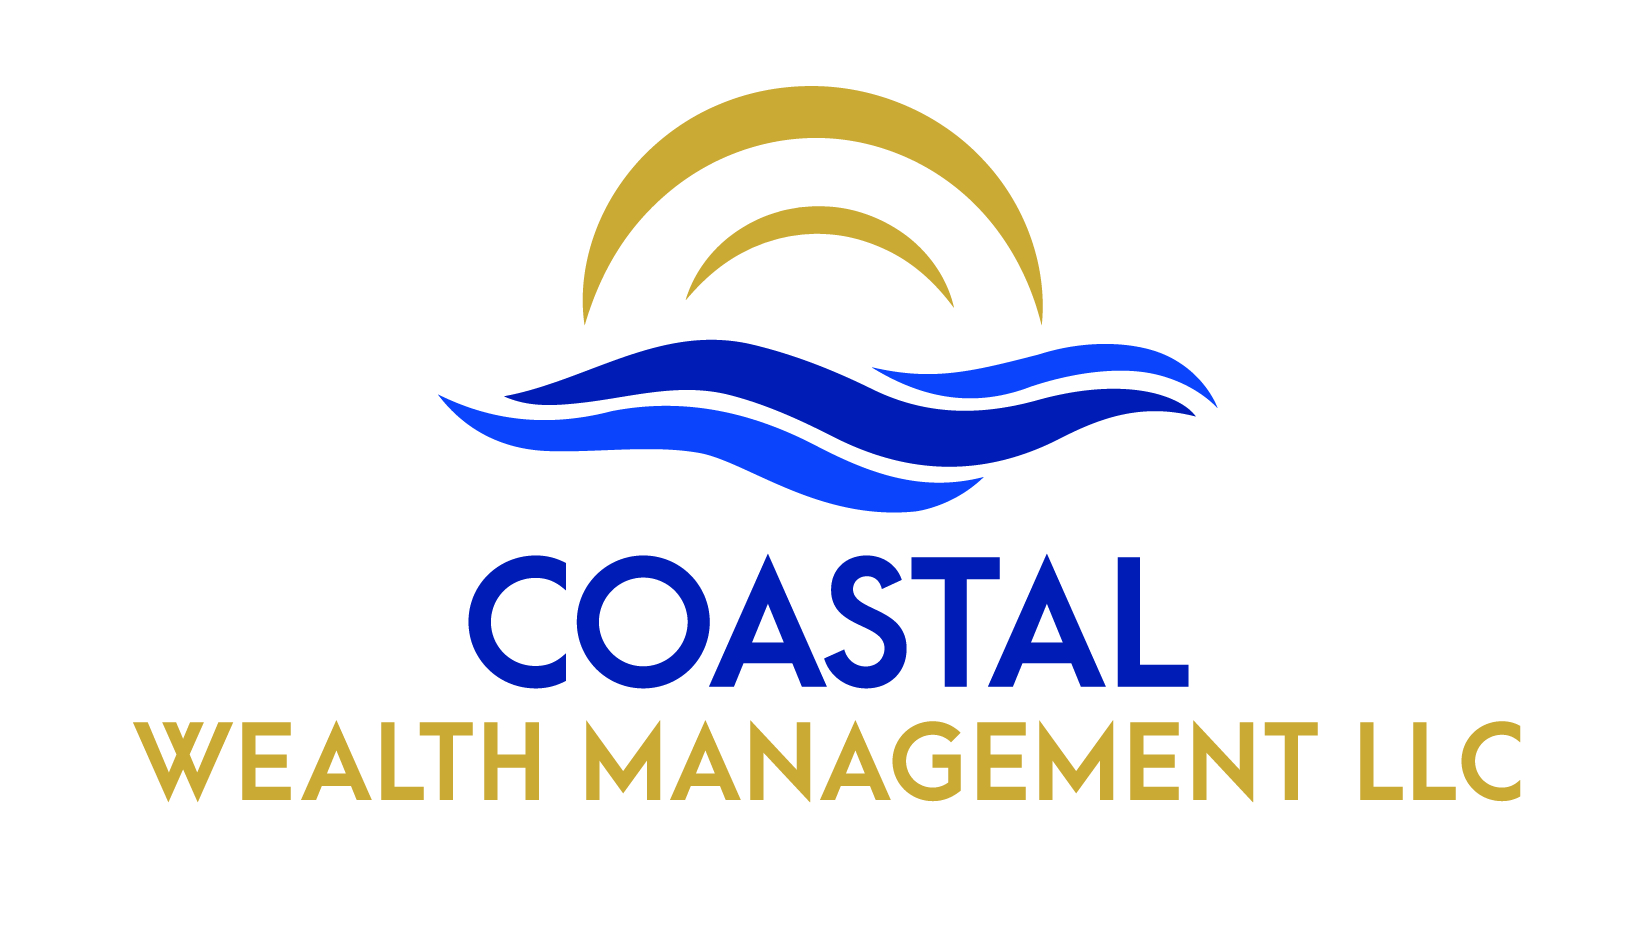 Coastal Wealth Management LLC